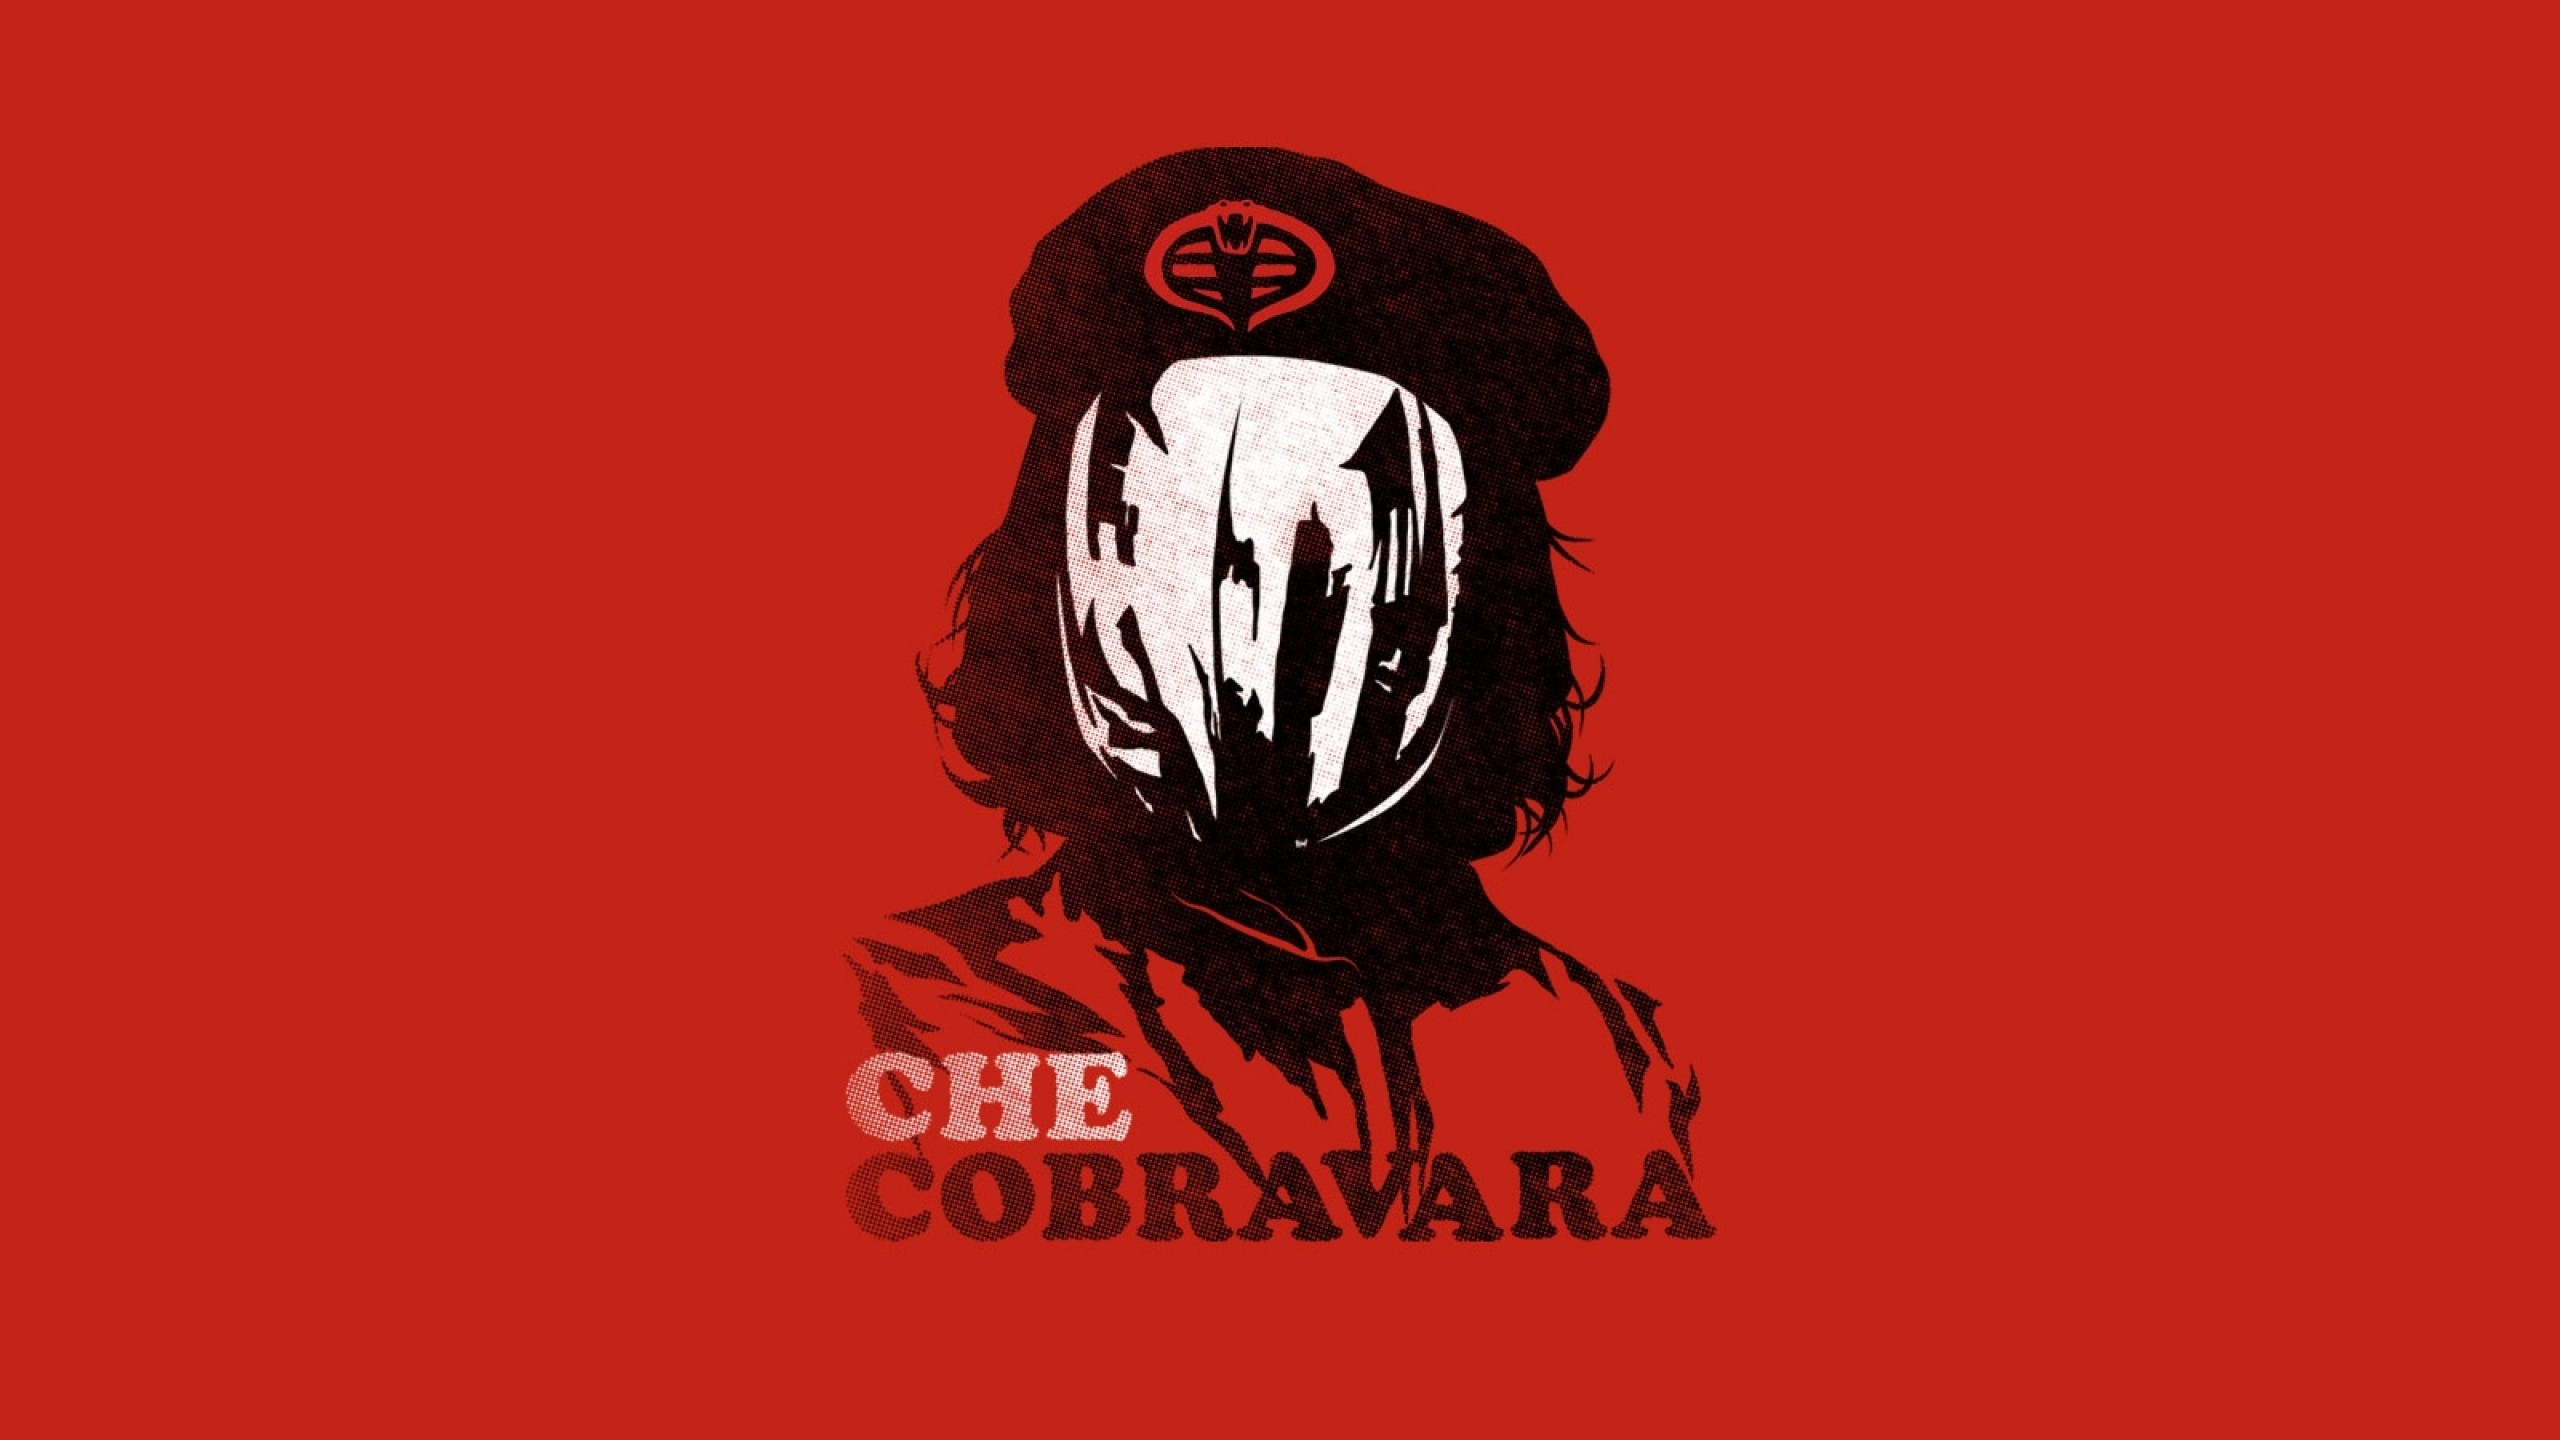 2560x1440 minimalistic che funny gi joe cobra command 1600x900 wallpaper Art HD  Wallpaper